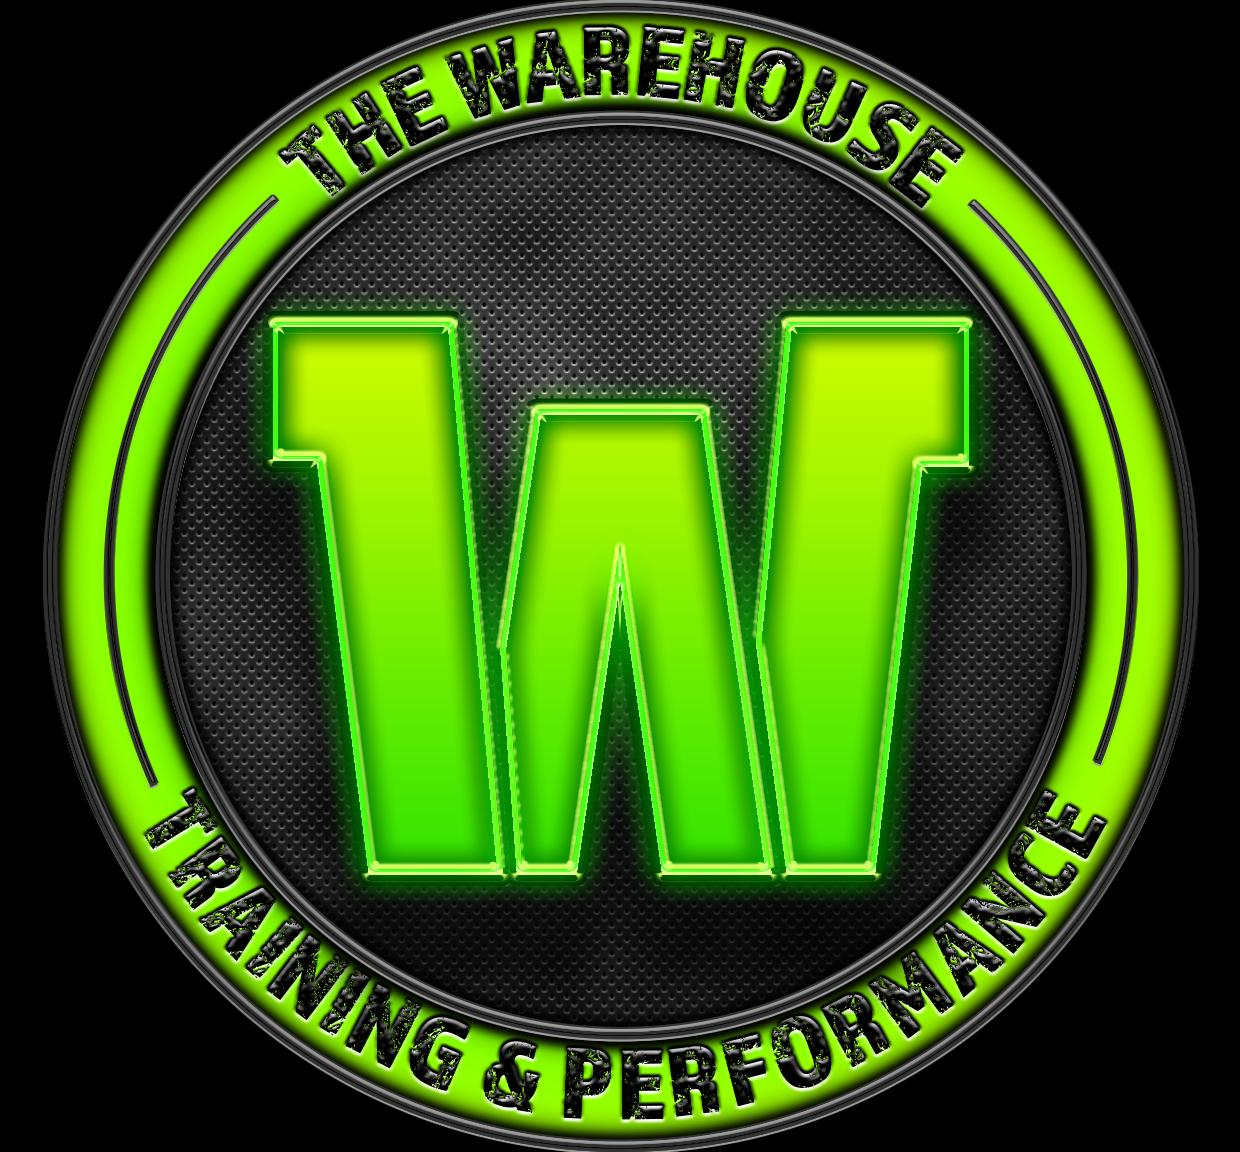 The Warehouse Training and Performance